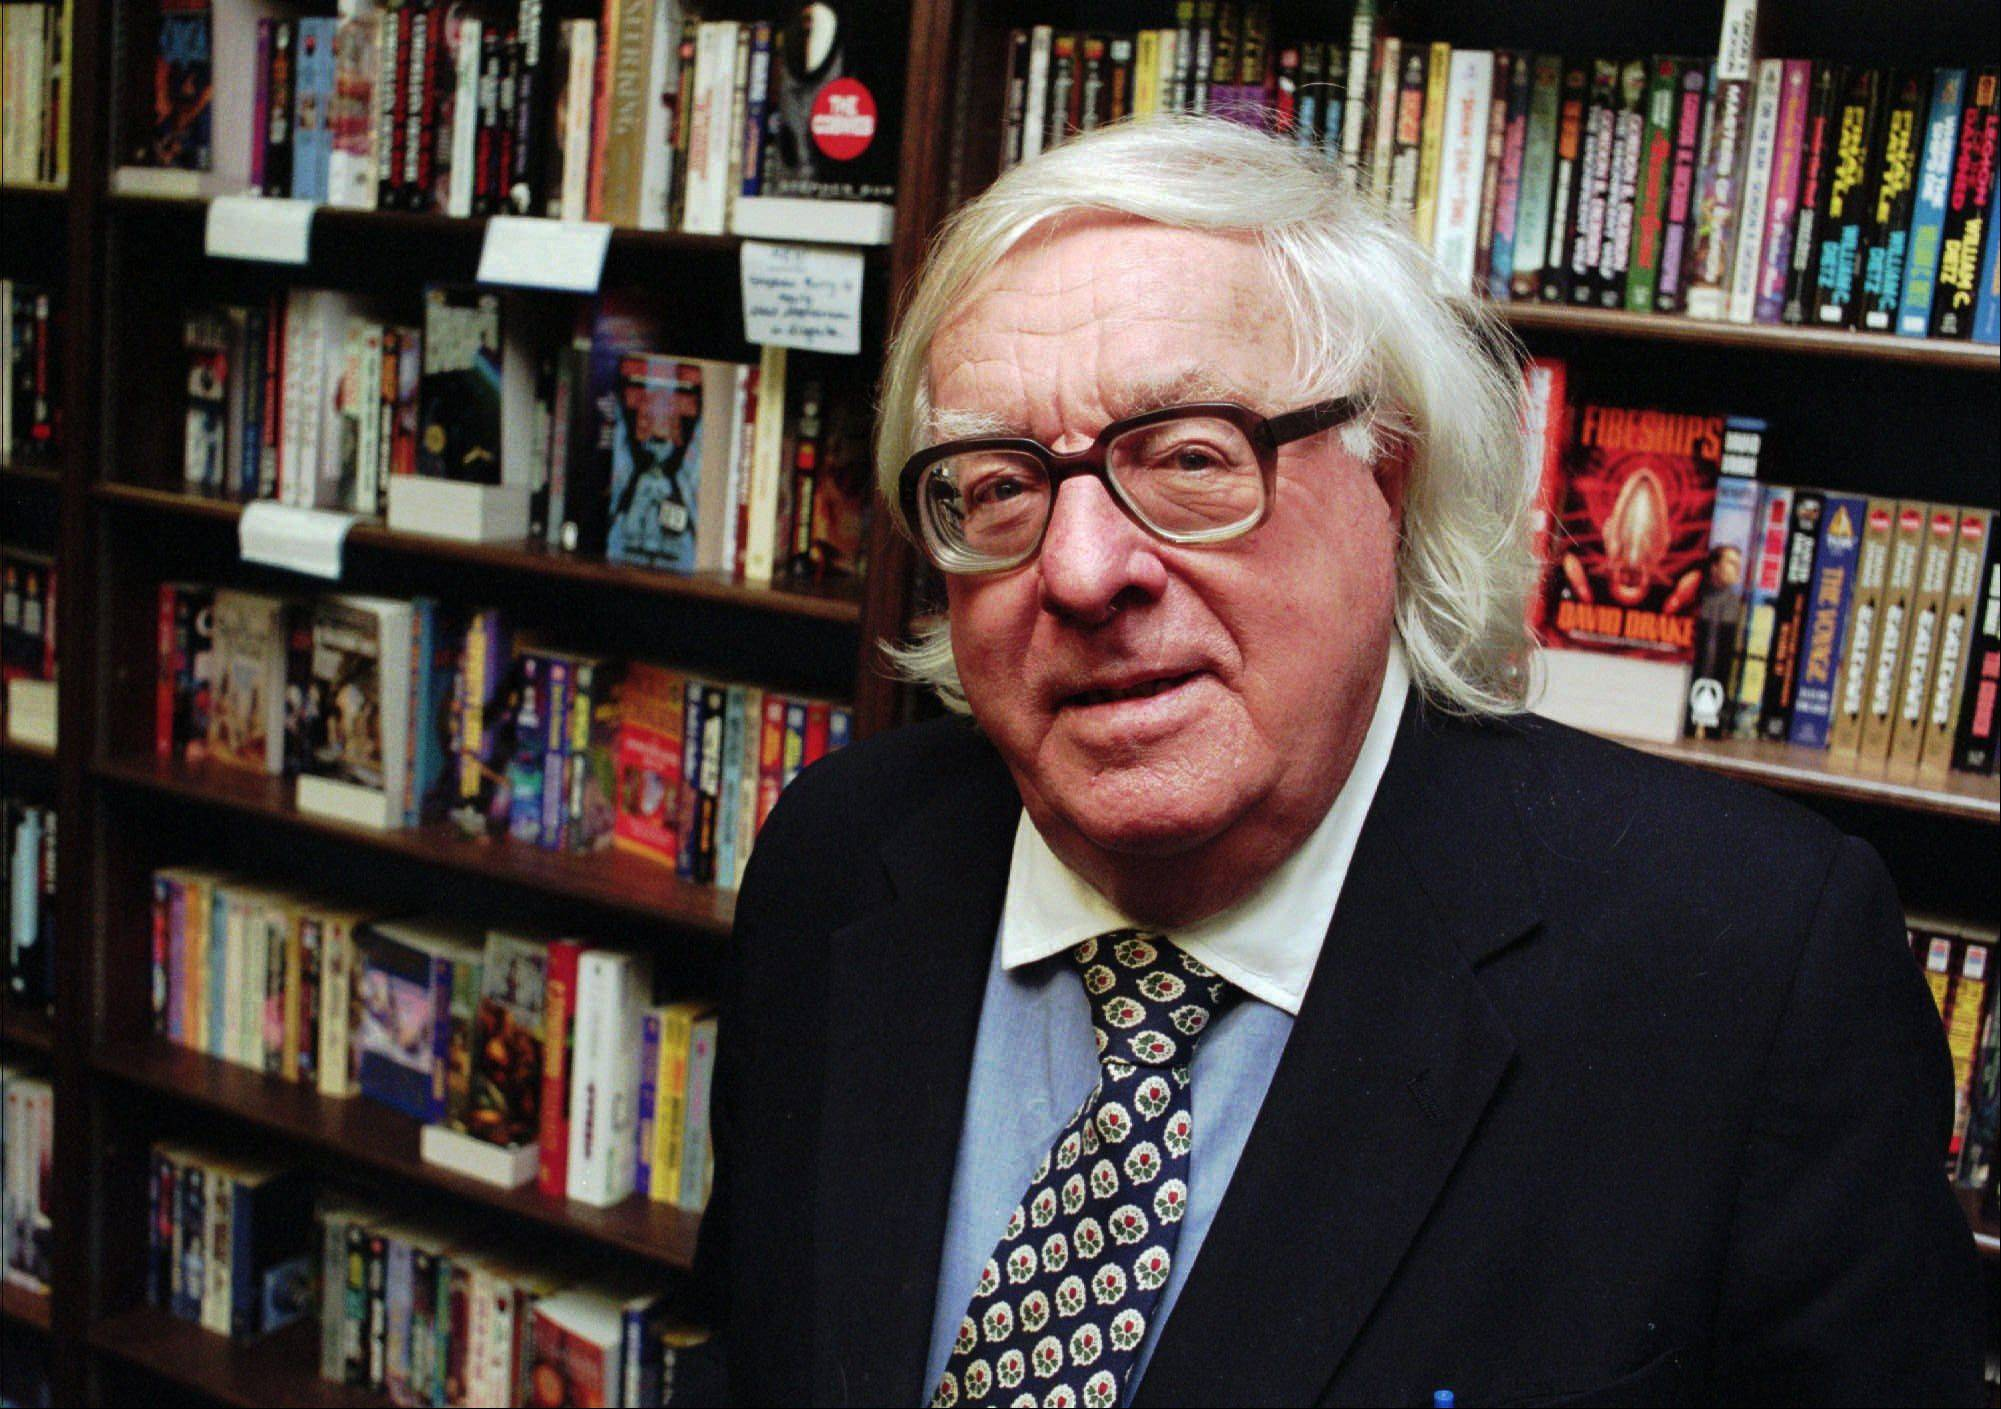 Author, Waukegan native Ray Bradbury dies in California